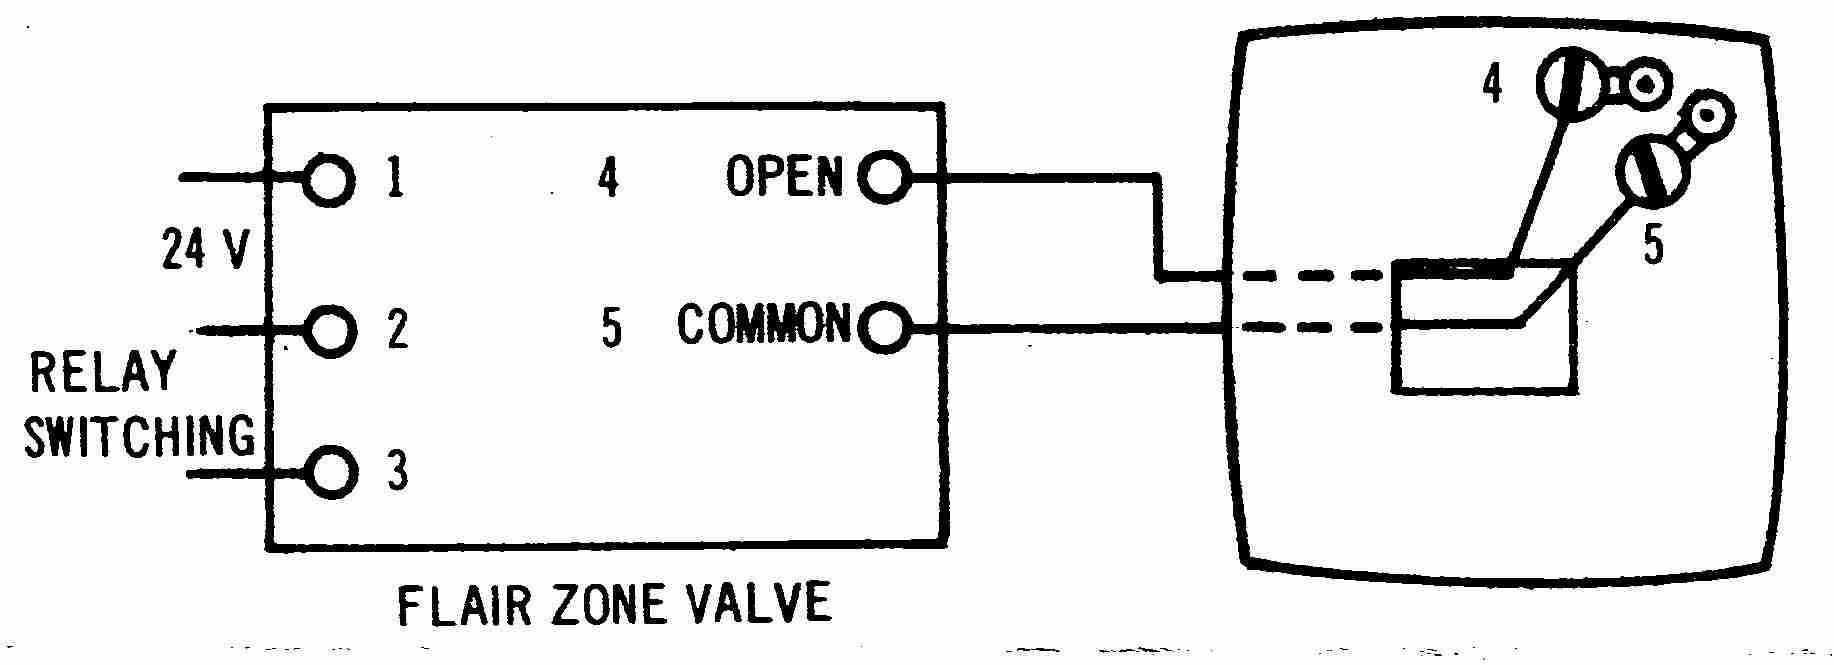 Room Thermostat Wiring Diagrams For Hvac Systems 2 Line Phone Diagram Flair Wire Thermosat